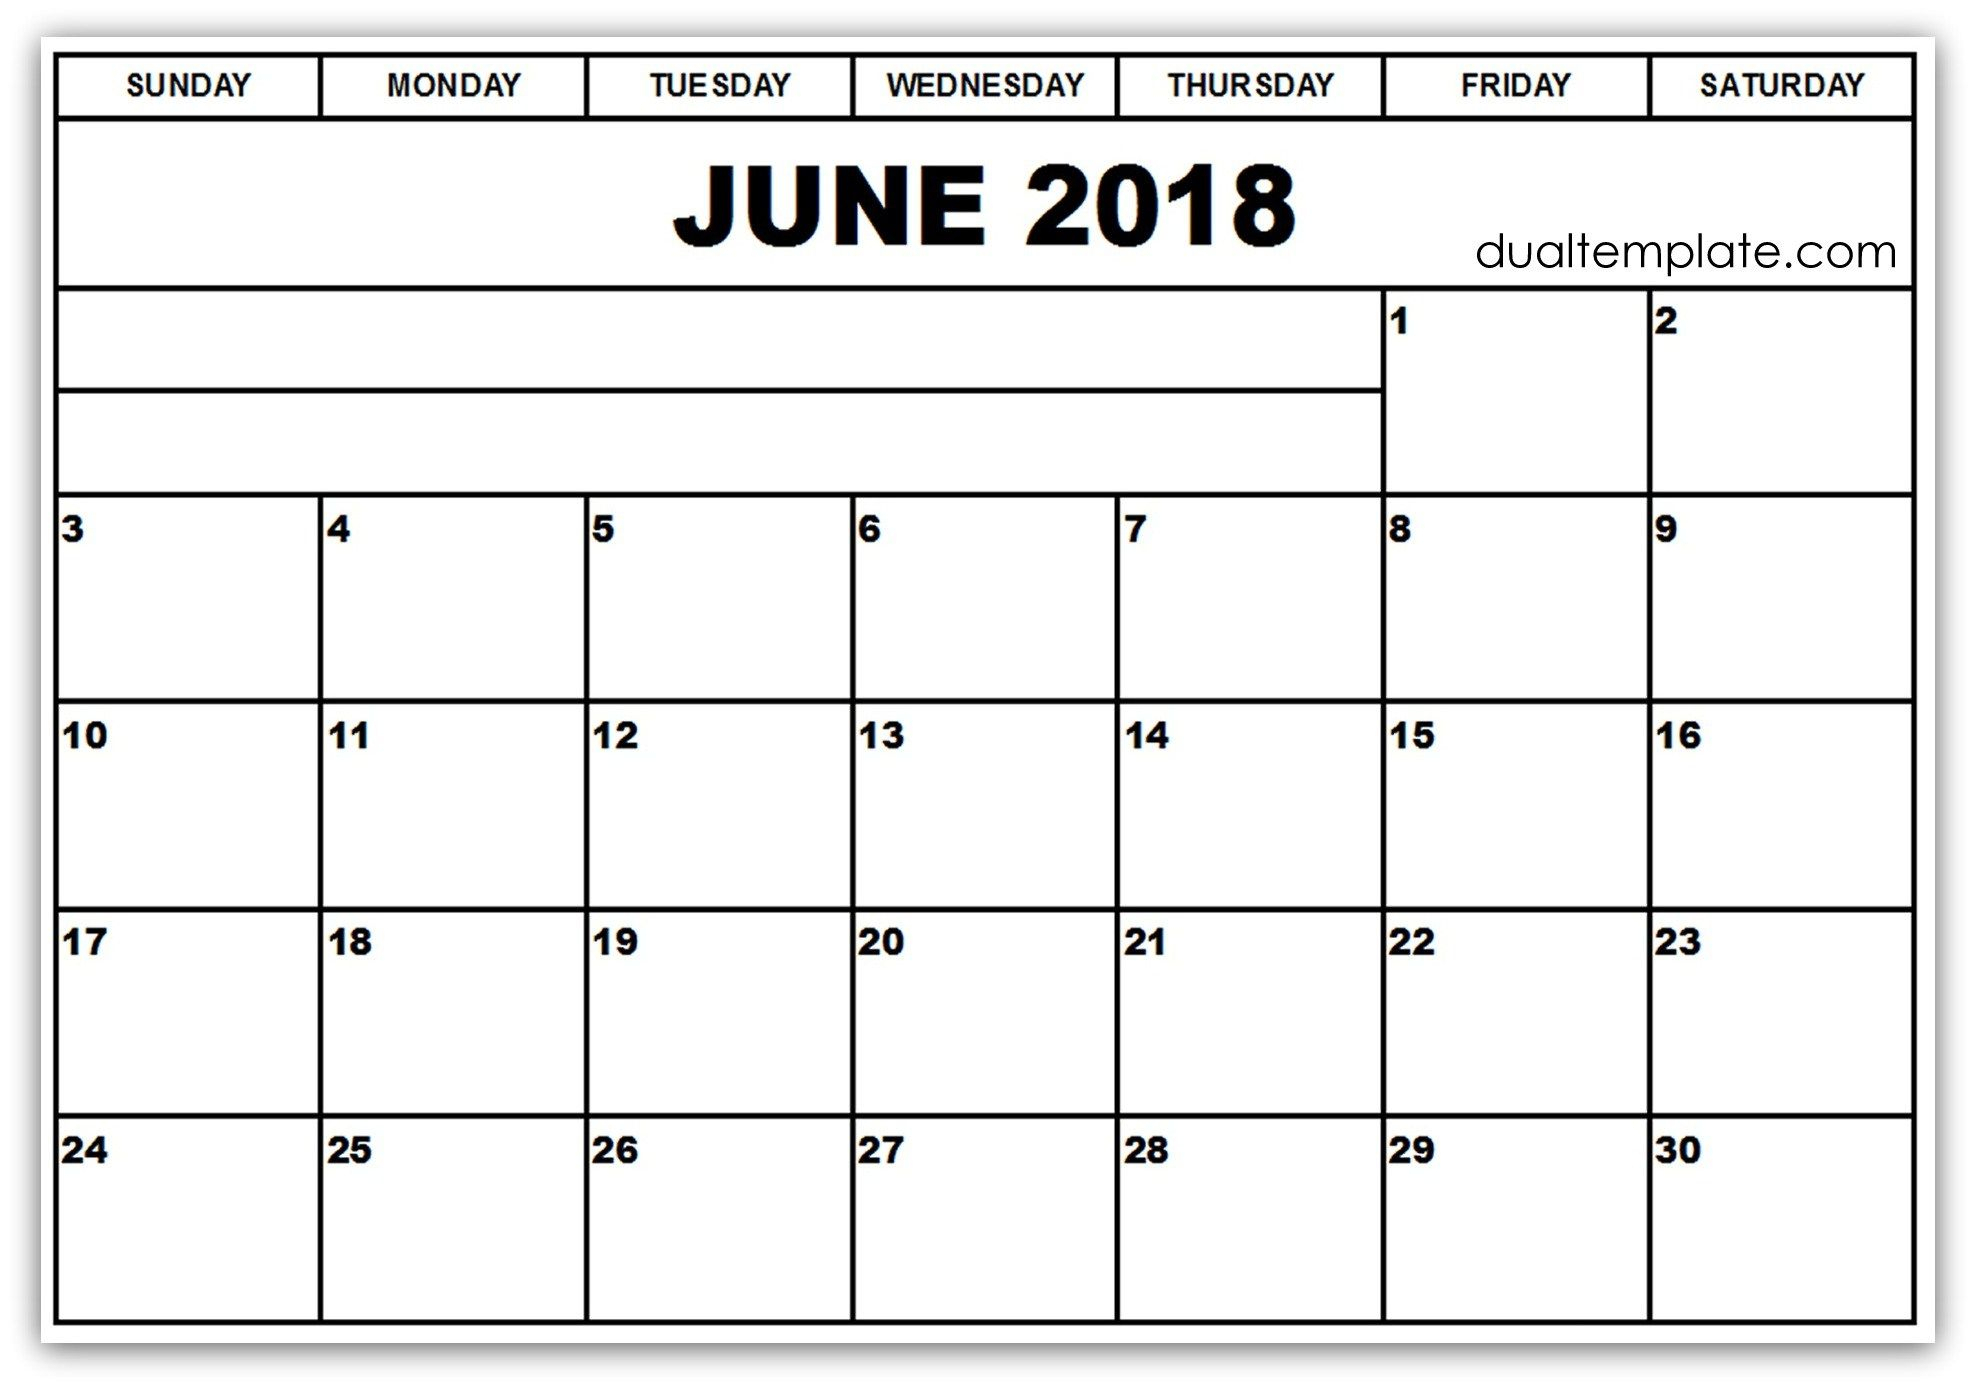 Pinakhil Sharma On June 2018 Calendar Printable Template | Blank regarding Printable Blank Calendar June